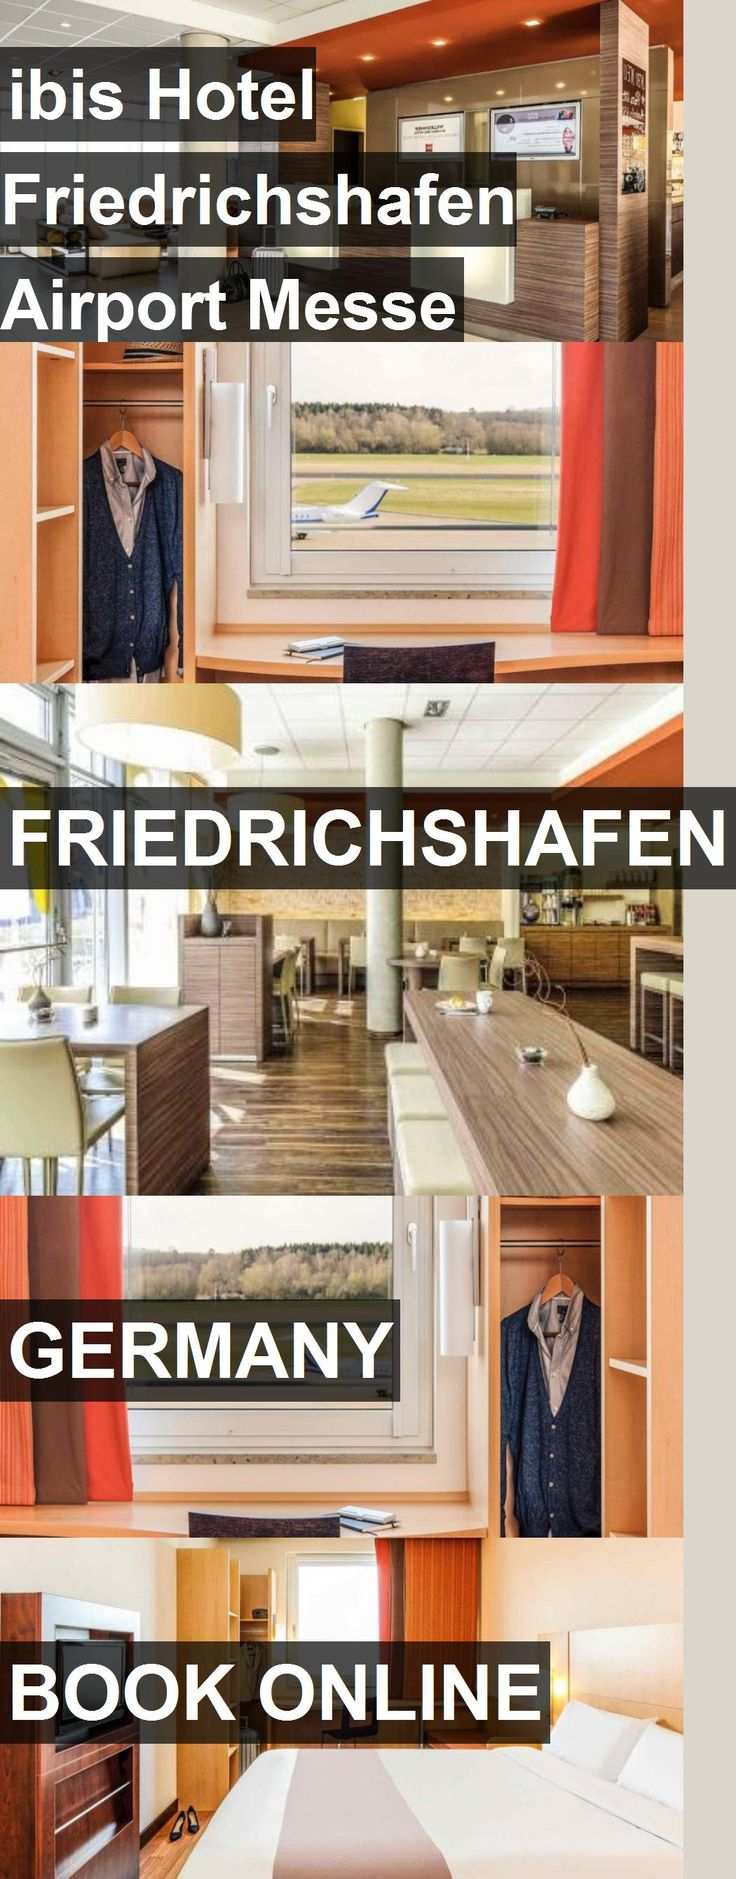 ibis Hotel Friedrichshafen Airport Messe in Friedrichshafen, Germany. For more information, photos, reviews and best prices please follow the link. #Germany #Friedrichshafen #travel #vacation #hotel